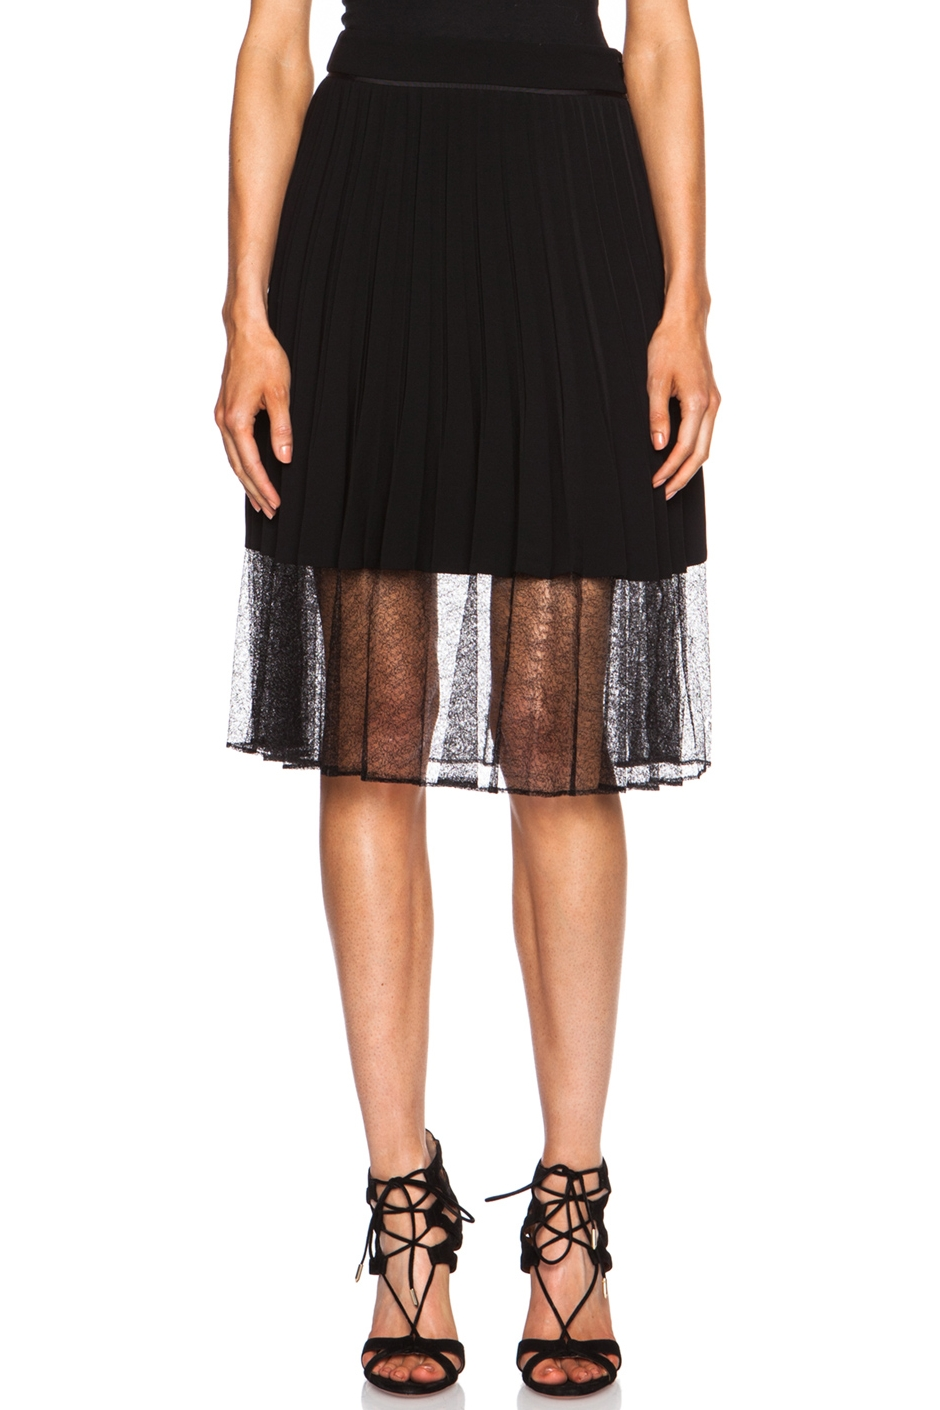 Rag & Bone Pleated Lace Skirt